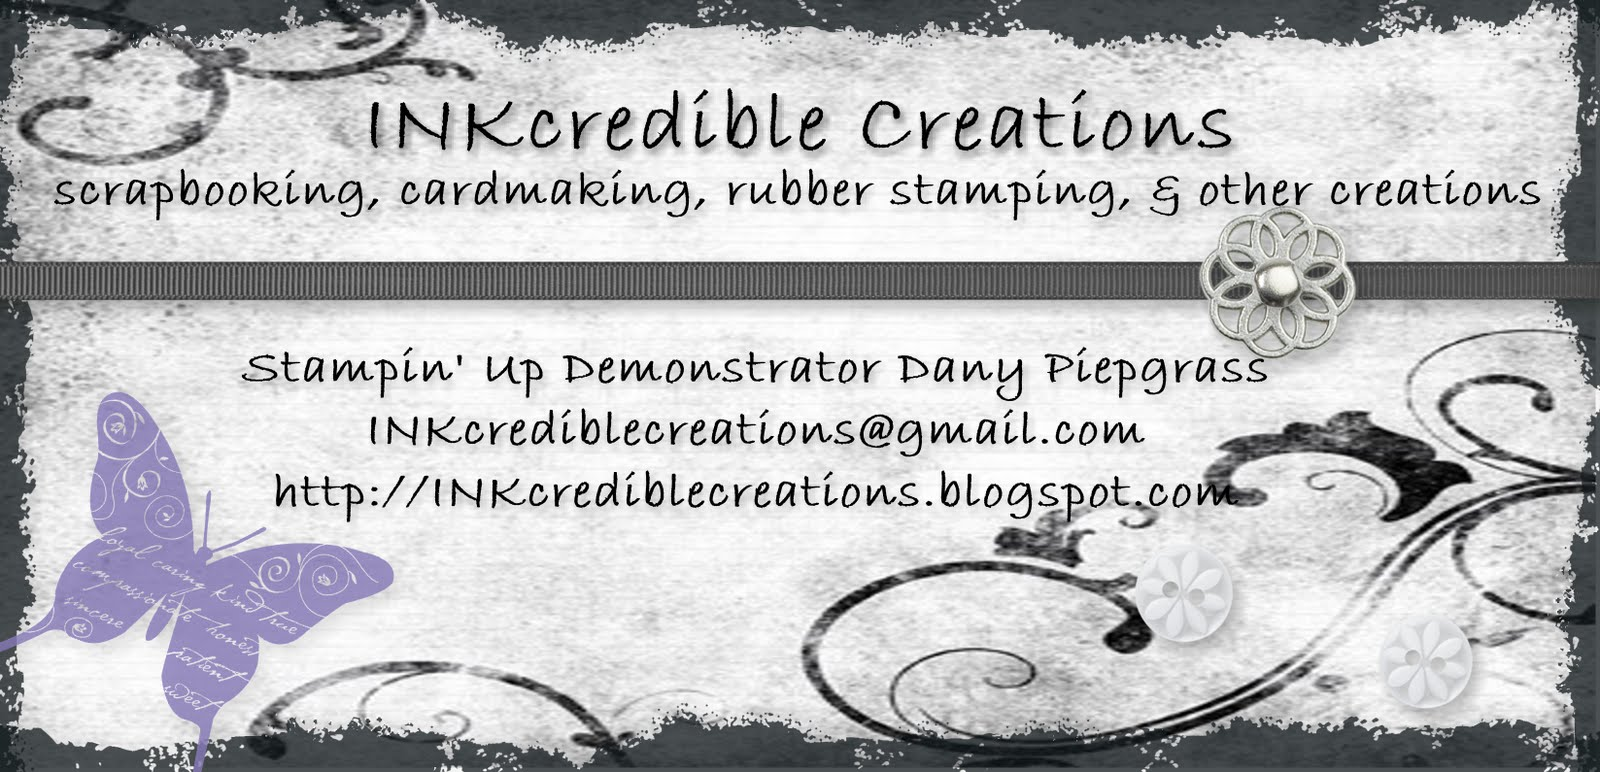 INKcredible creations